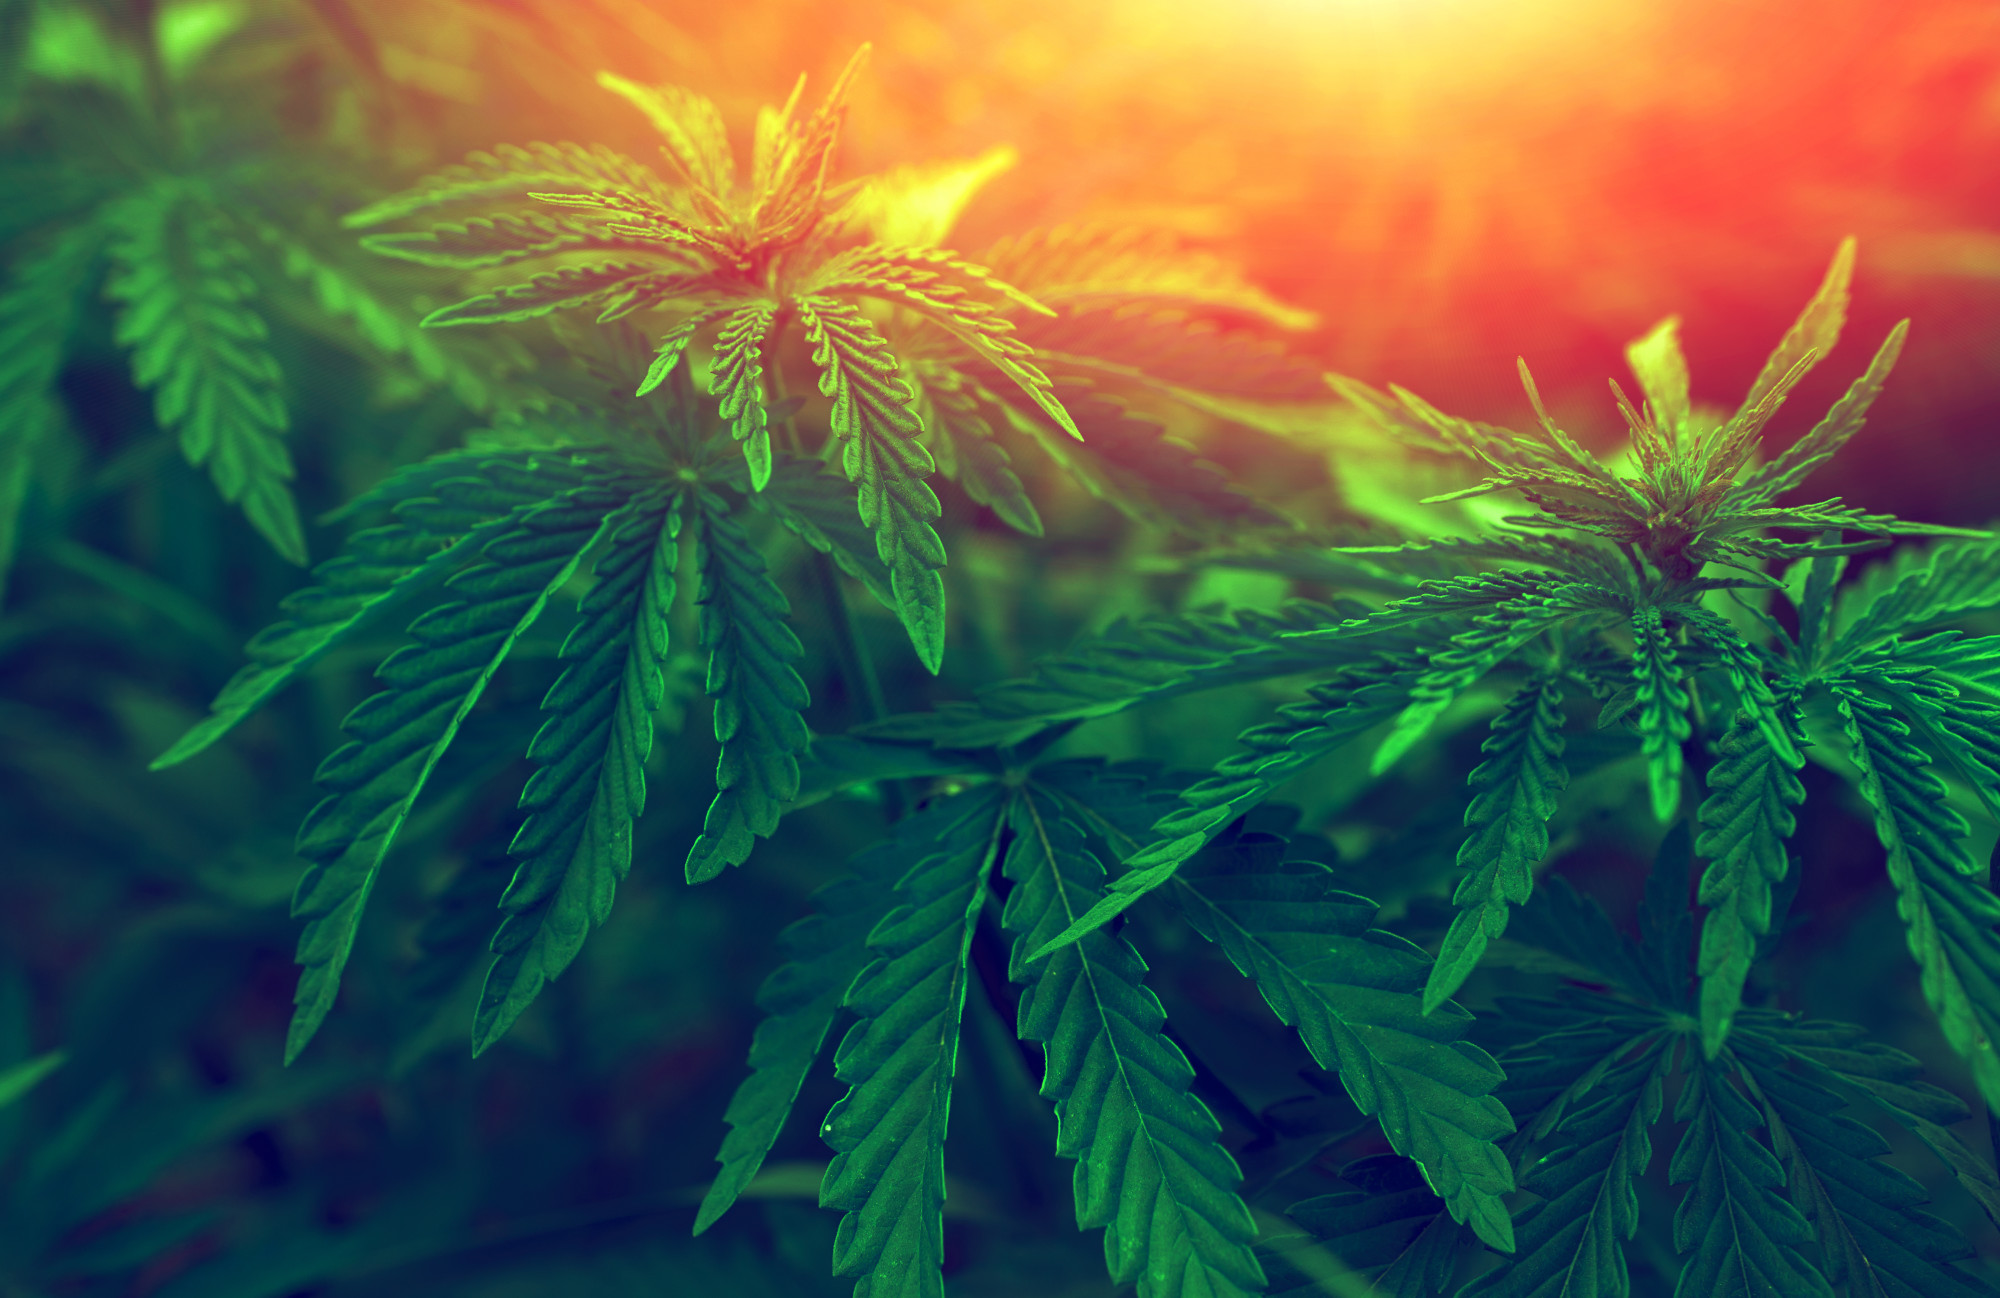 The Pros and Cons of Marijuana: The 5 Most Common Arguments For and Against Medical Marijuana